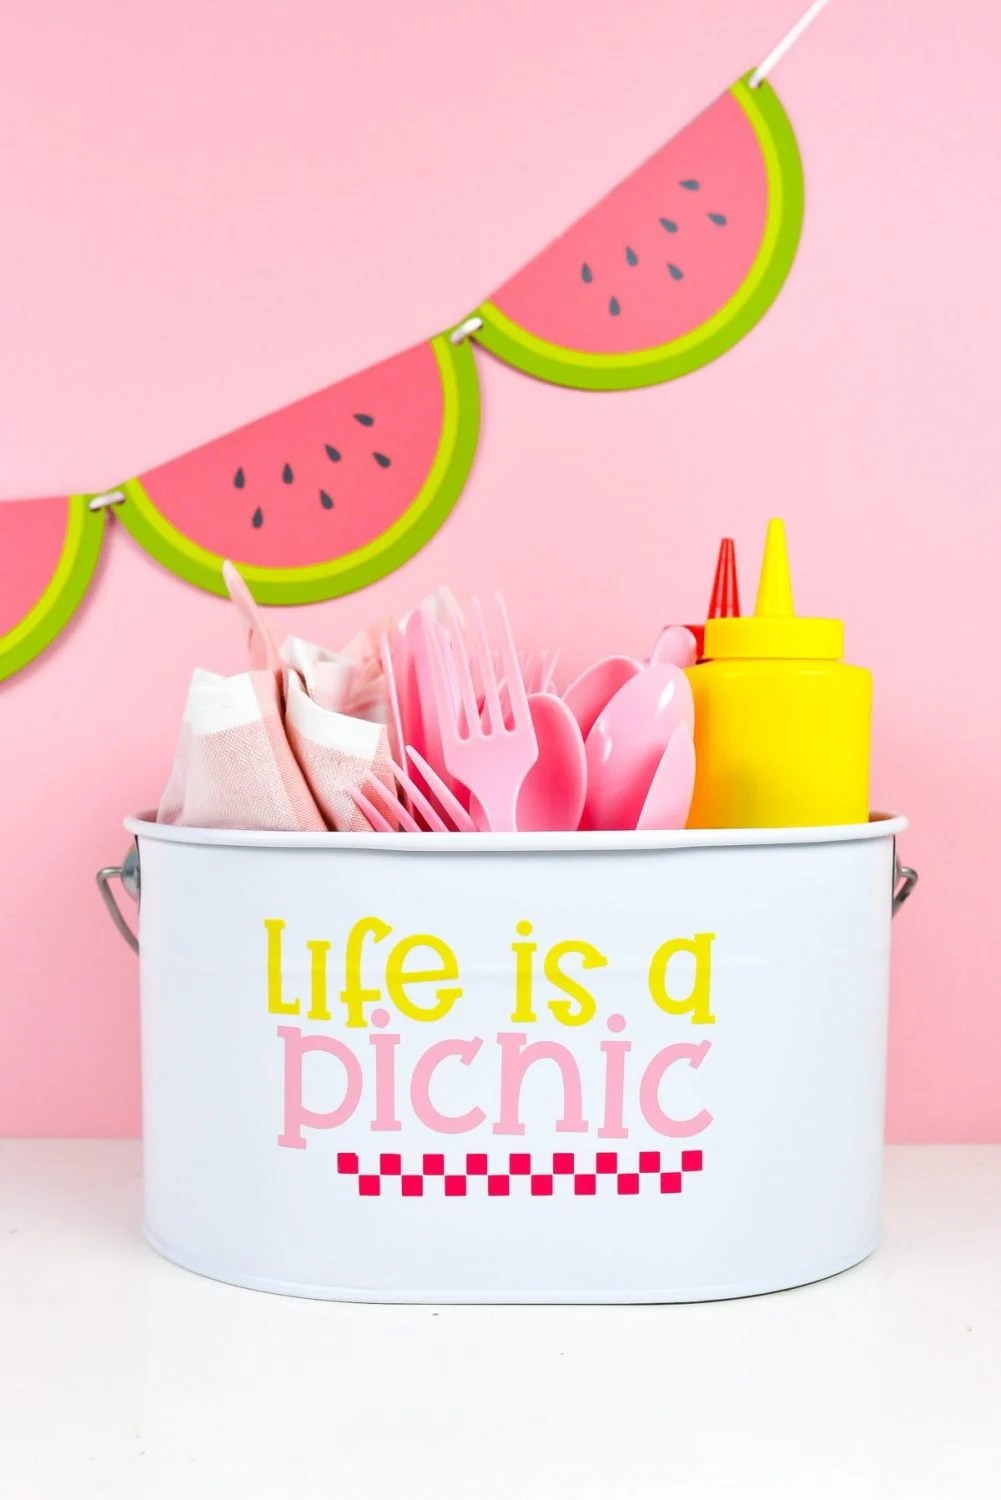 White picnic caddy with Life is a Picnic decal, filled with picnic supplies on a pink watermelon background.